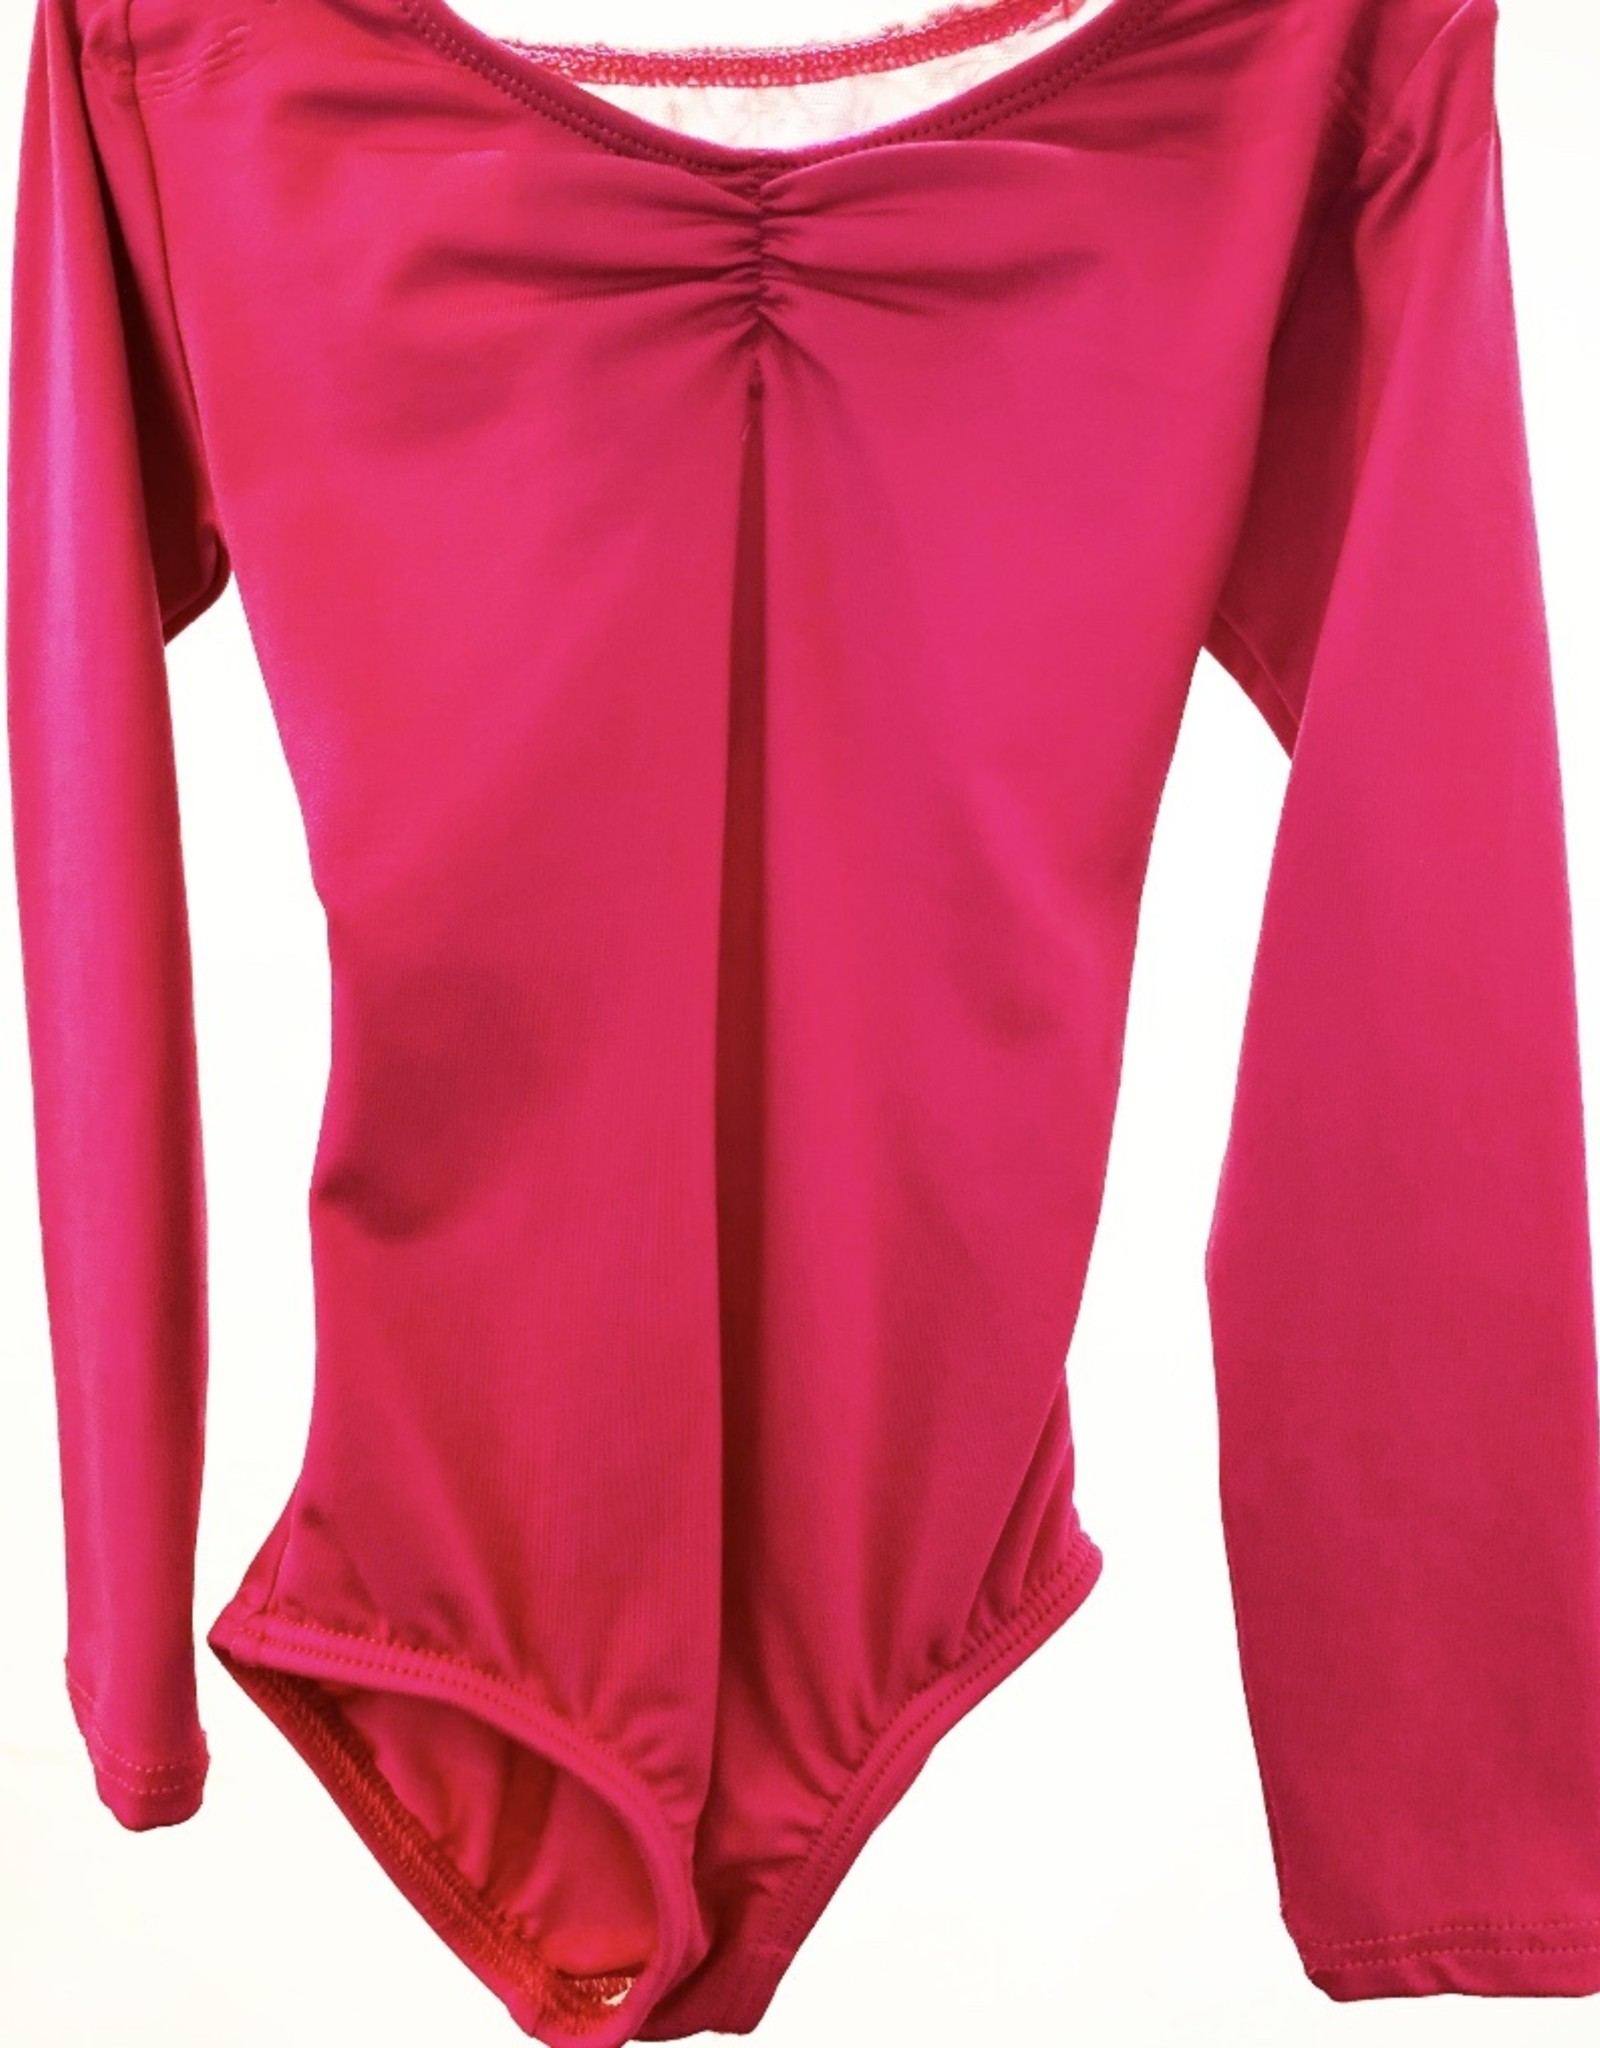 MOTIONWEAR LONG SLEEVE OPEN BACK LEOTARD (2411)